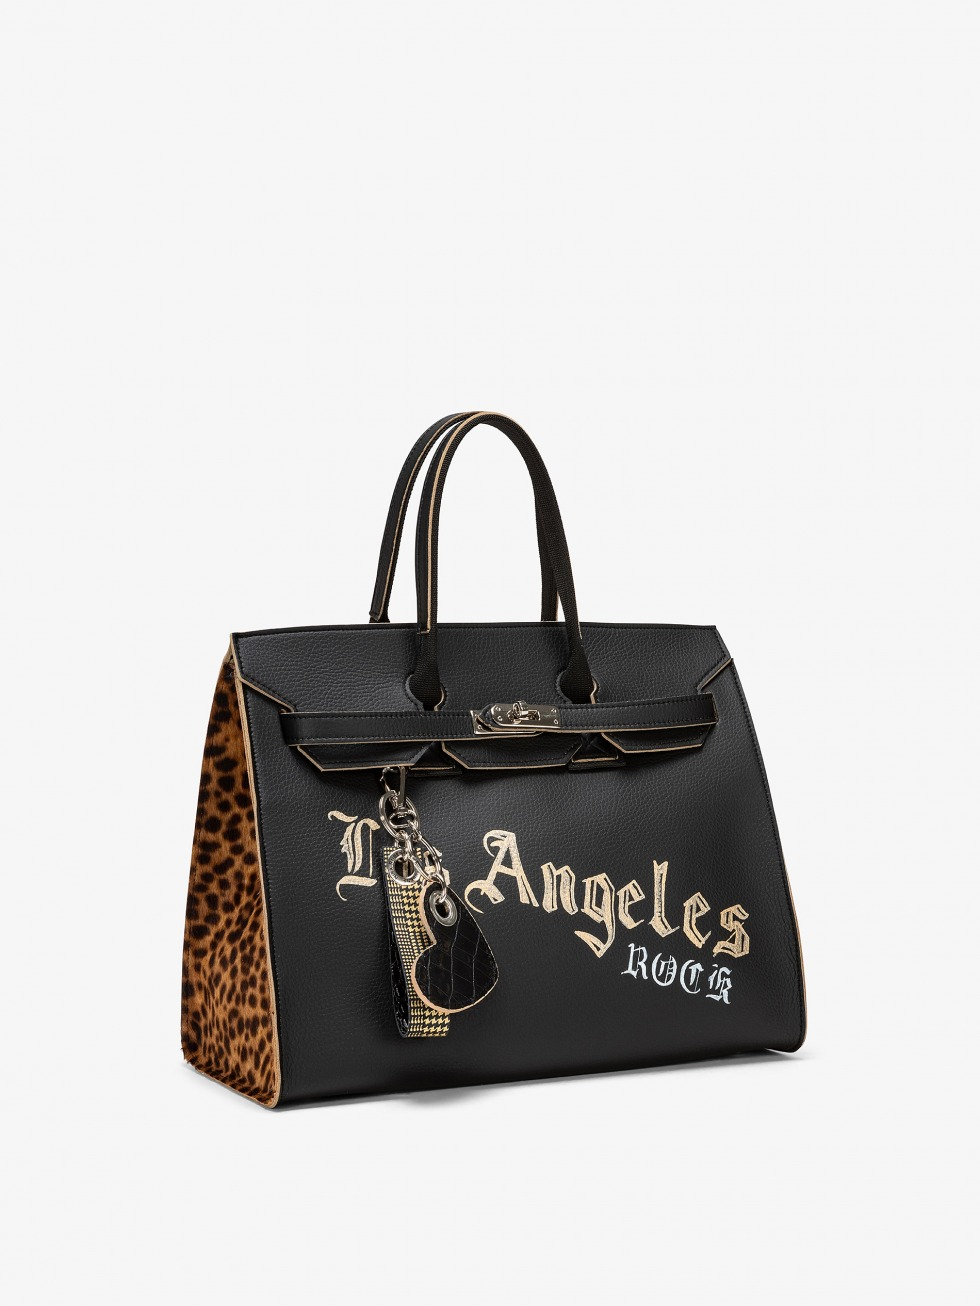 SHOPPING ON LINE NIRA RUBENS BORSA EASY AND BAG LOS ANGELES ROCK NEW COLLECTION WOMEN'S FALL/WINTER 2022